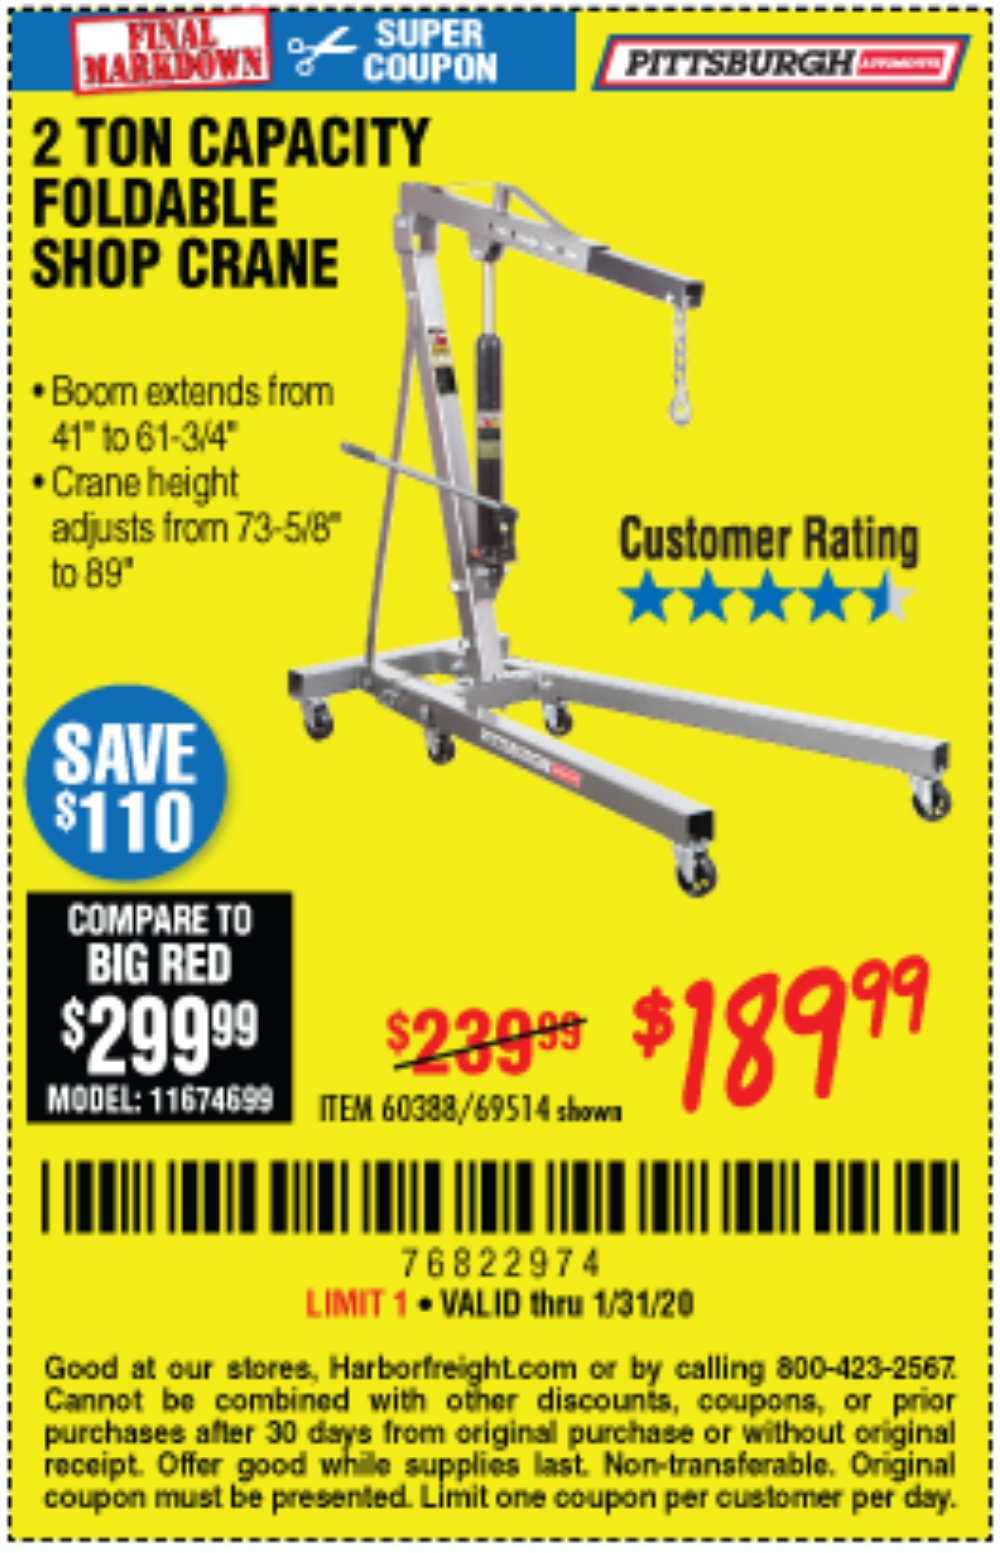 Harbor Freight Coupon, HF Coupons - 2 Ton Foldable Shop Crane